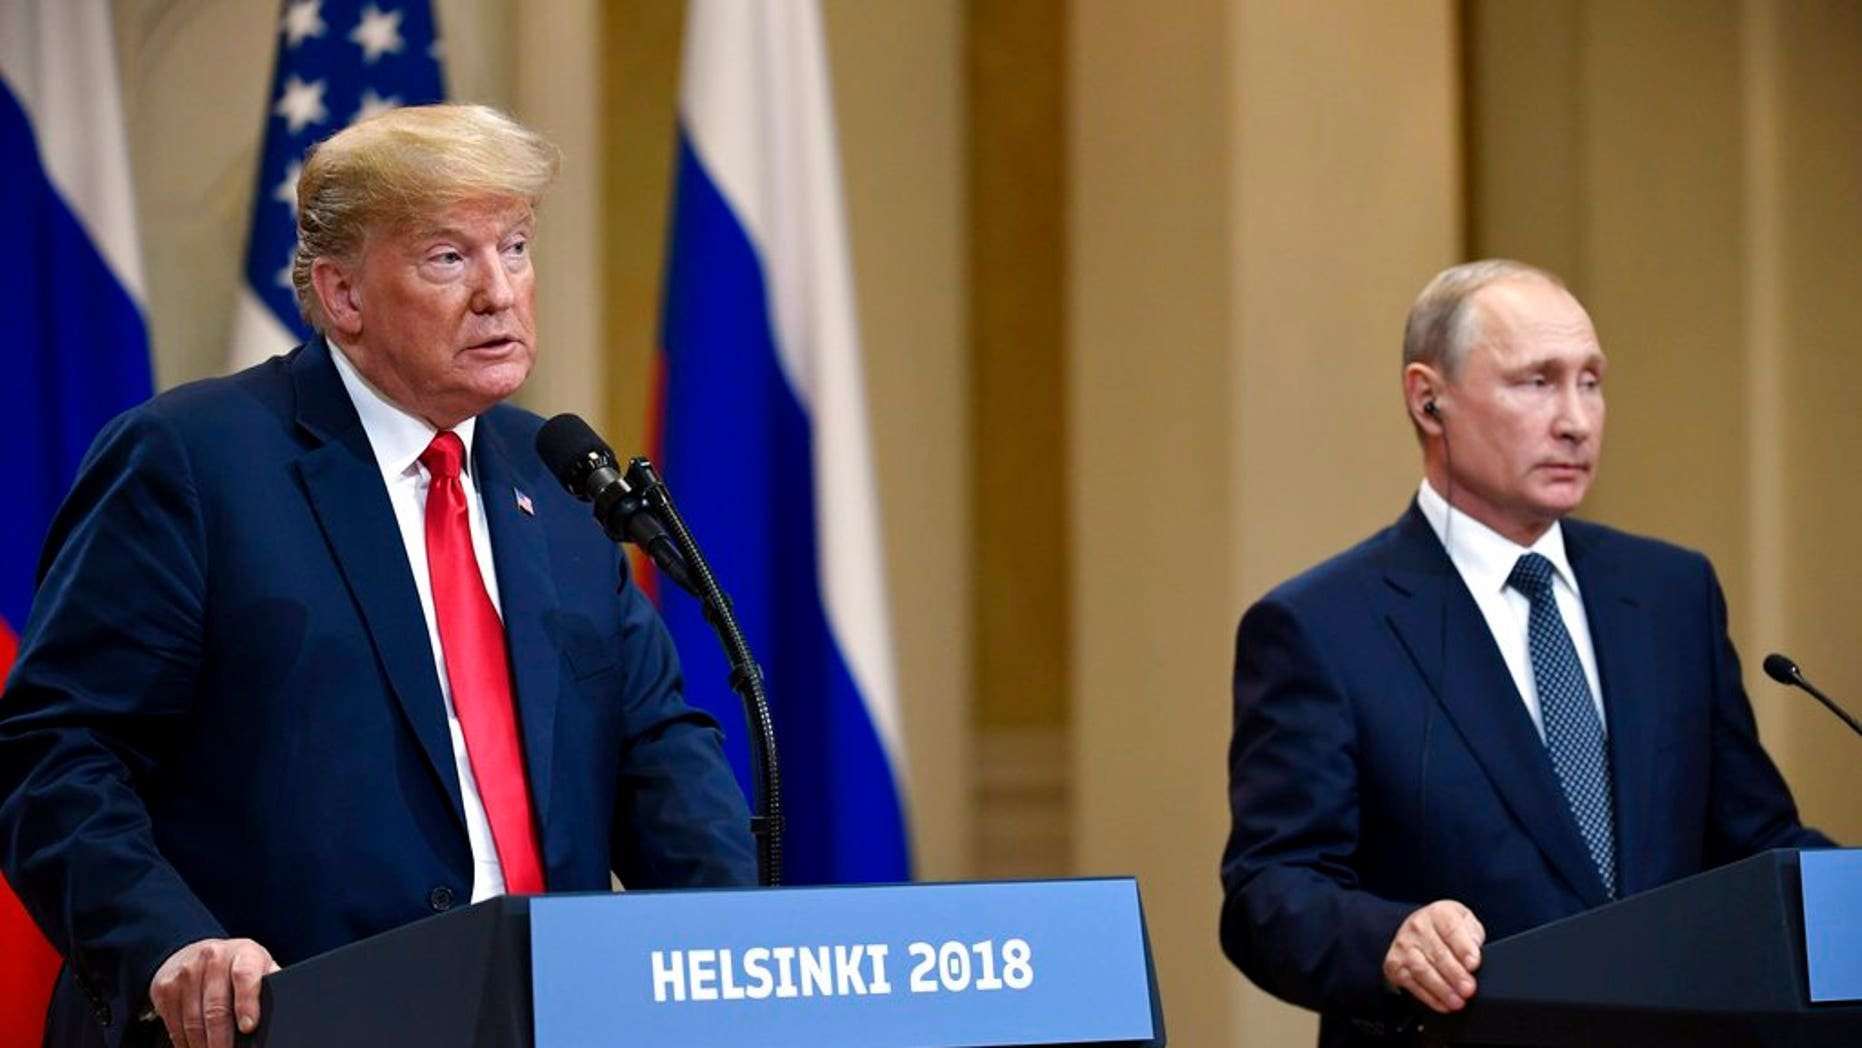 U.S. President Donald Trump speaks as Russian President Vladimir Putin listens during a join press conference at the Presidential Palace in Helsinki, Finland, Monday, July 16, 2018. (Antti Aimo-Koivisto/Lehtikuva via AP)